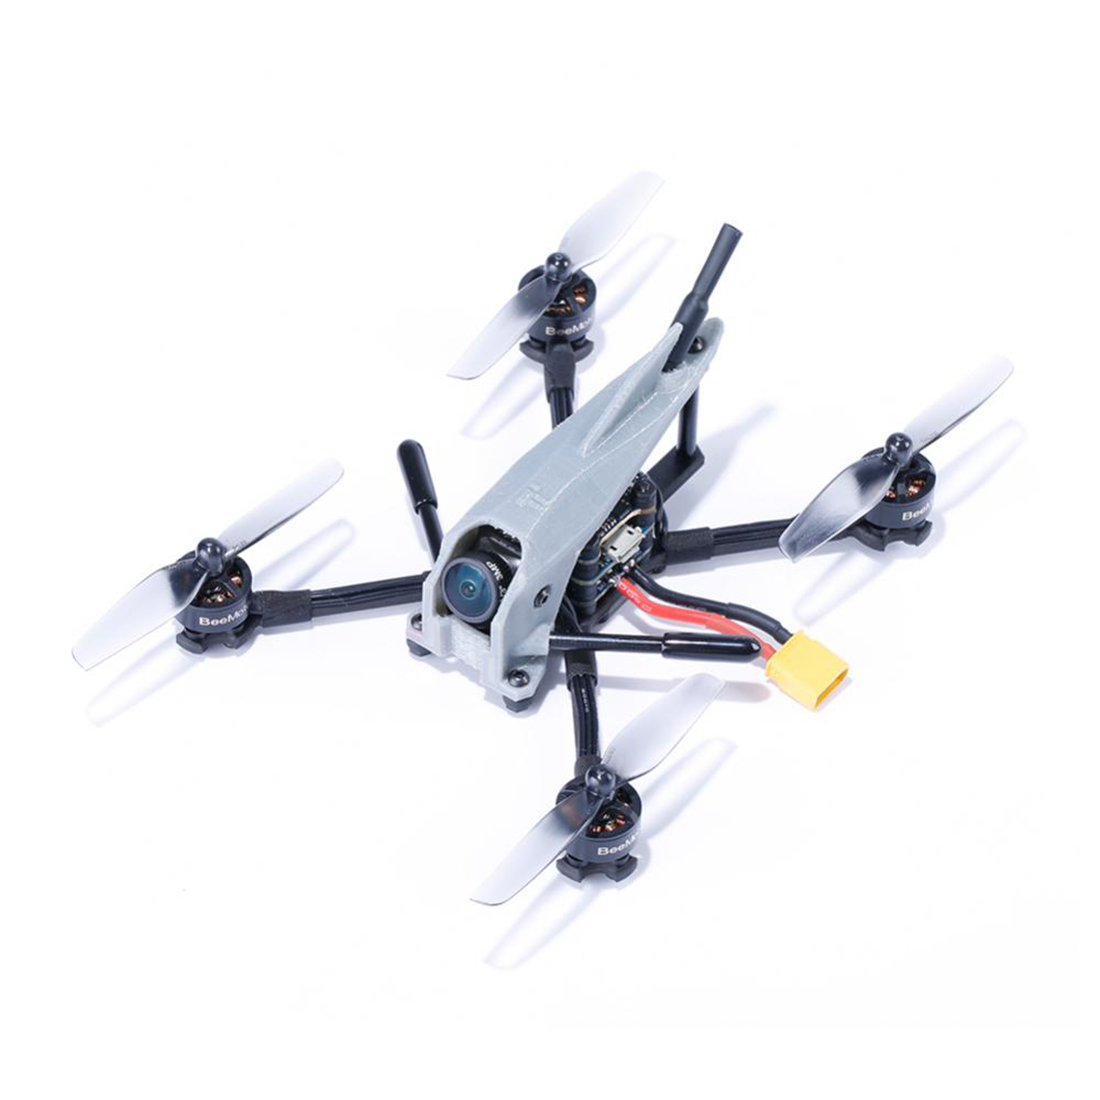 iFlight TurboBee 120RS 120mm 2S Micro FPV Drone BNF PNP with 2540 Propellers 1103 11000kV Brushless